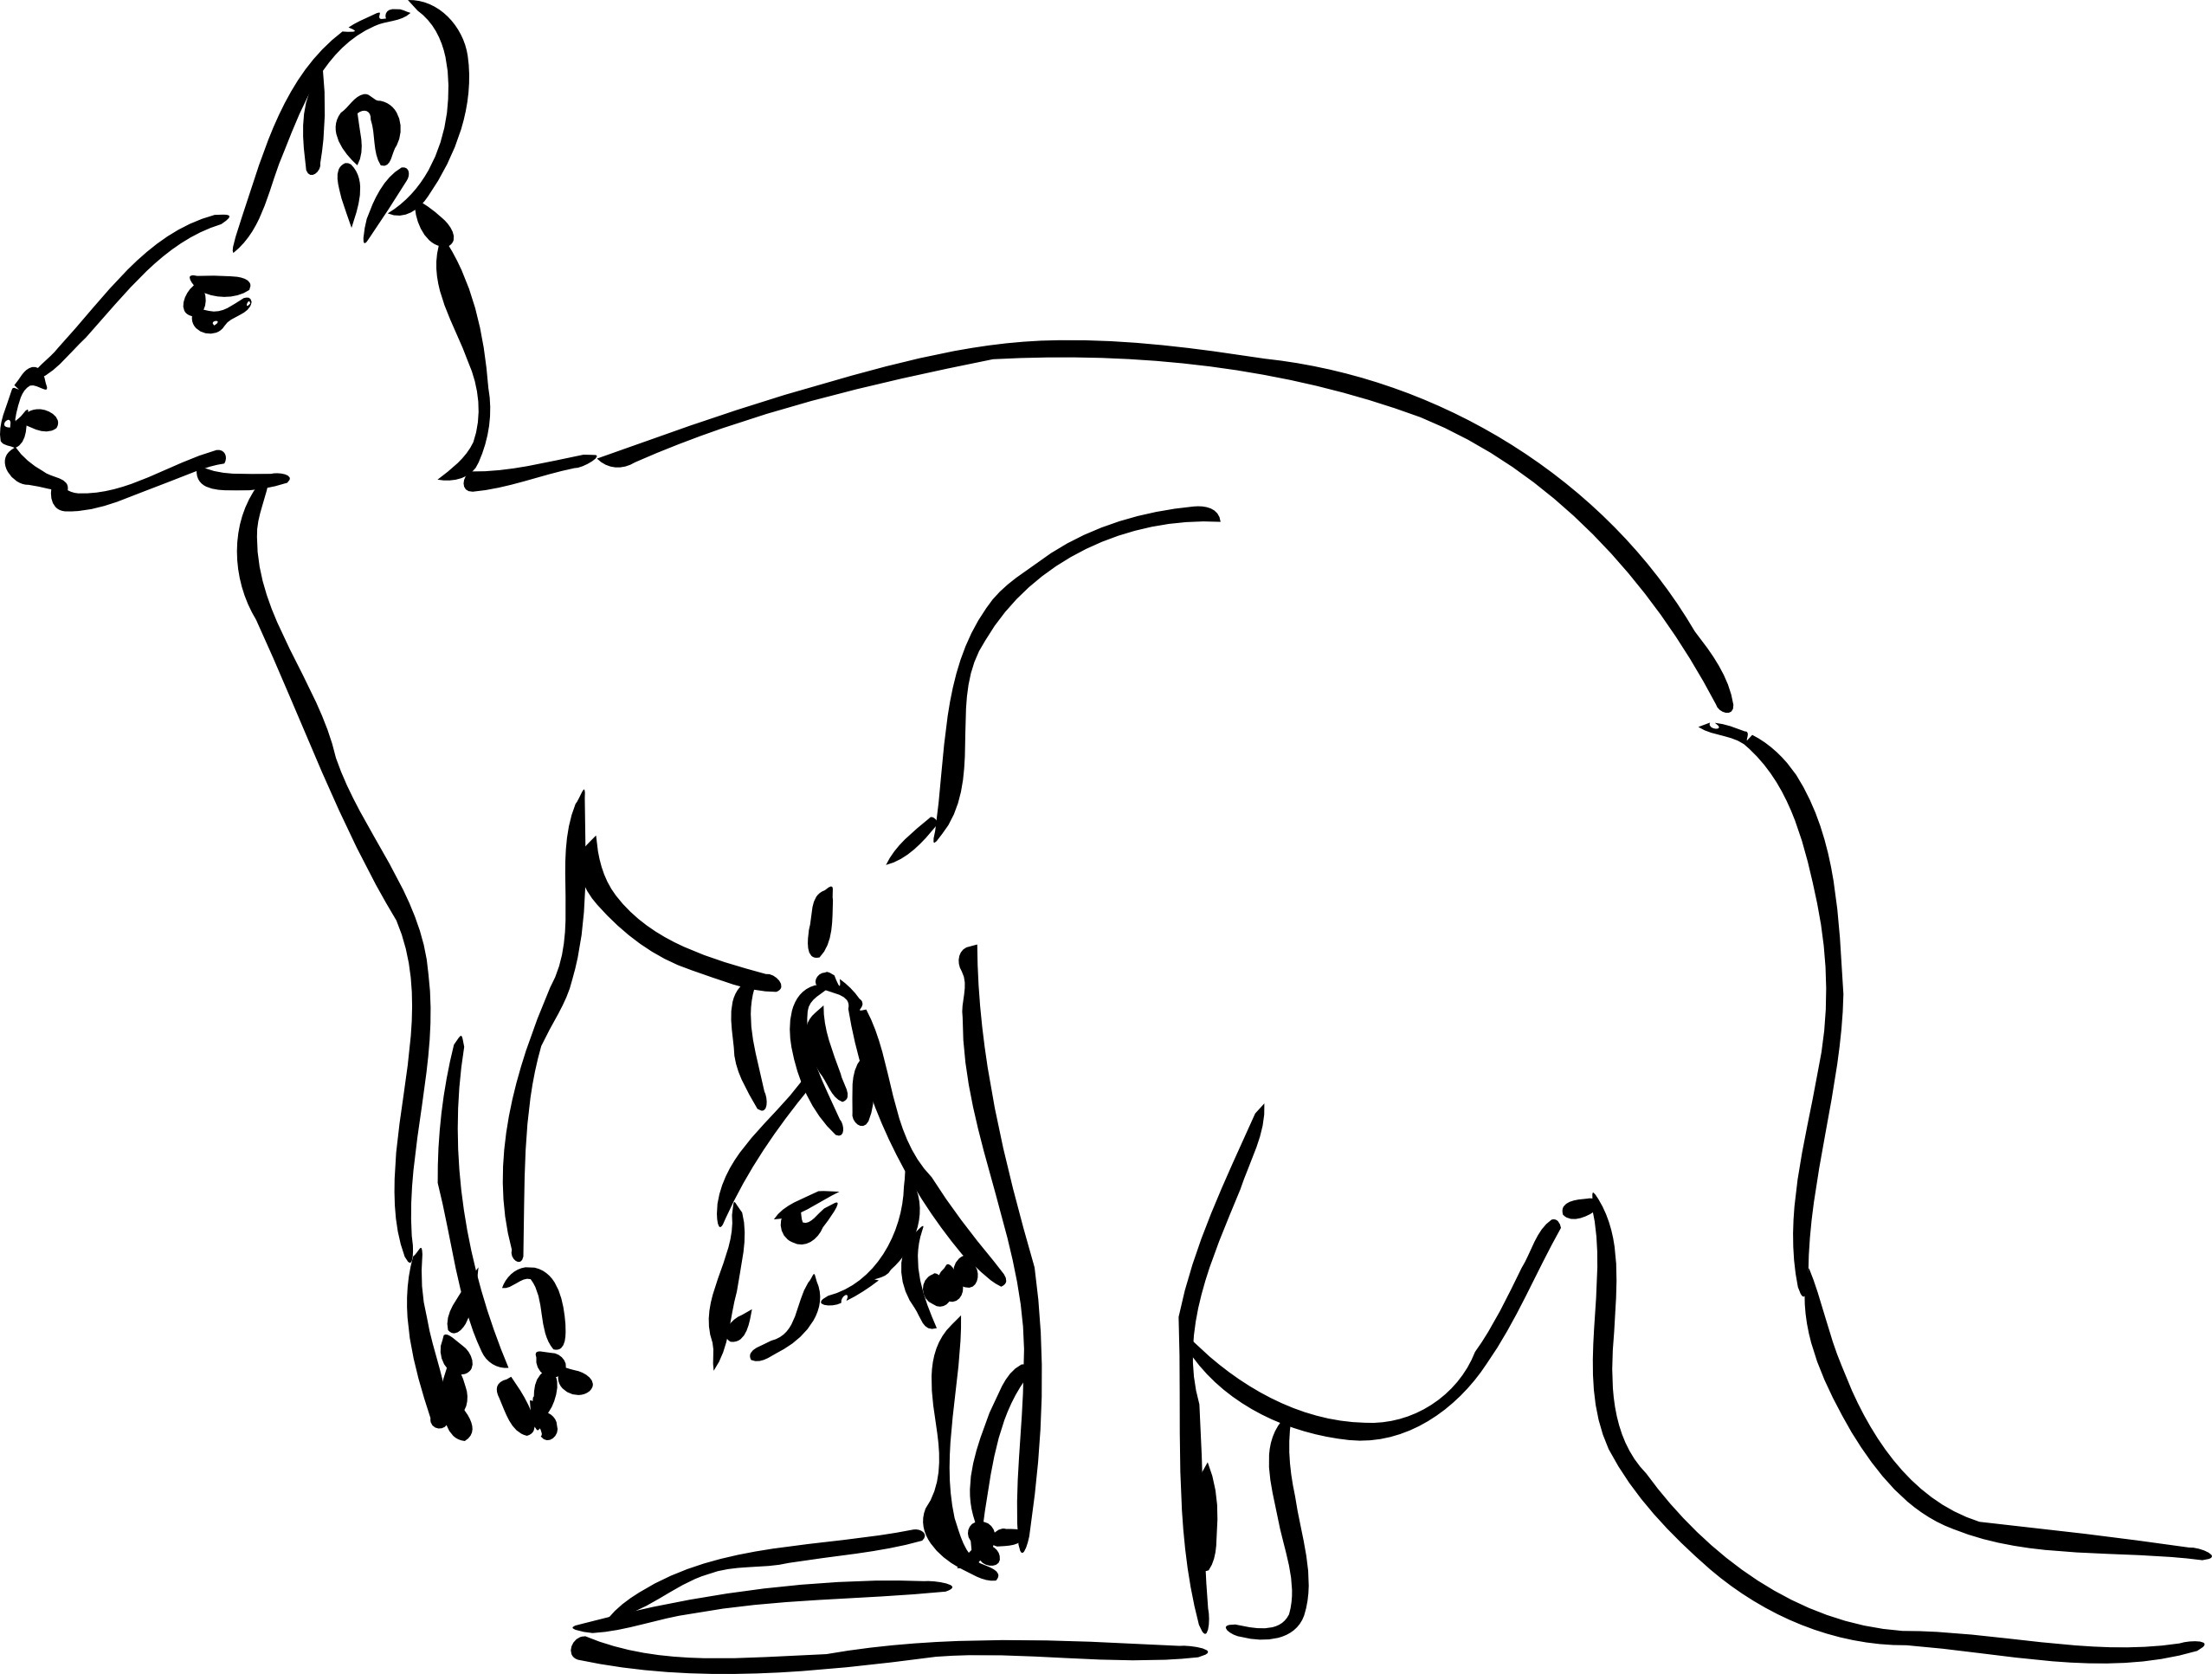 Free coloring pages kangaroo - Printable Kangaroo Coloring Pages Coloring Me